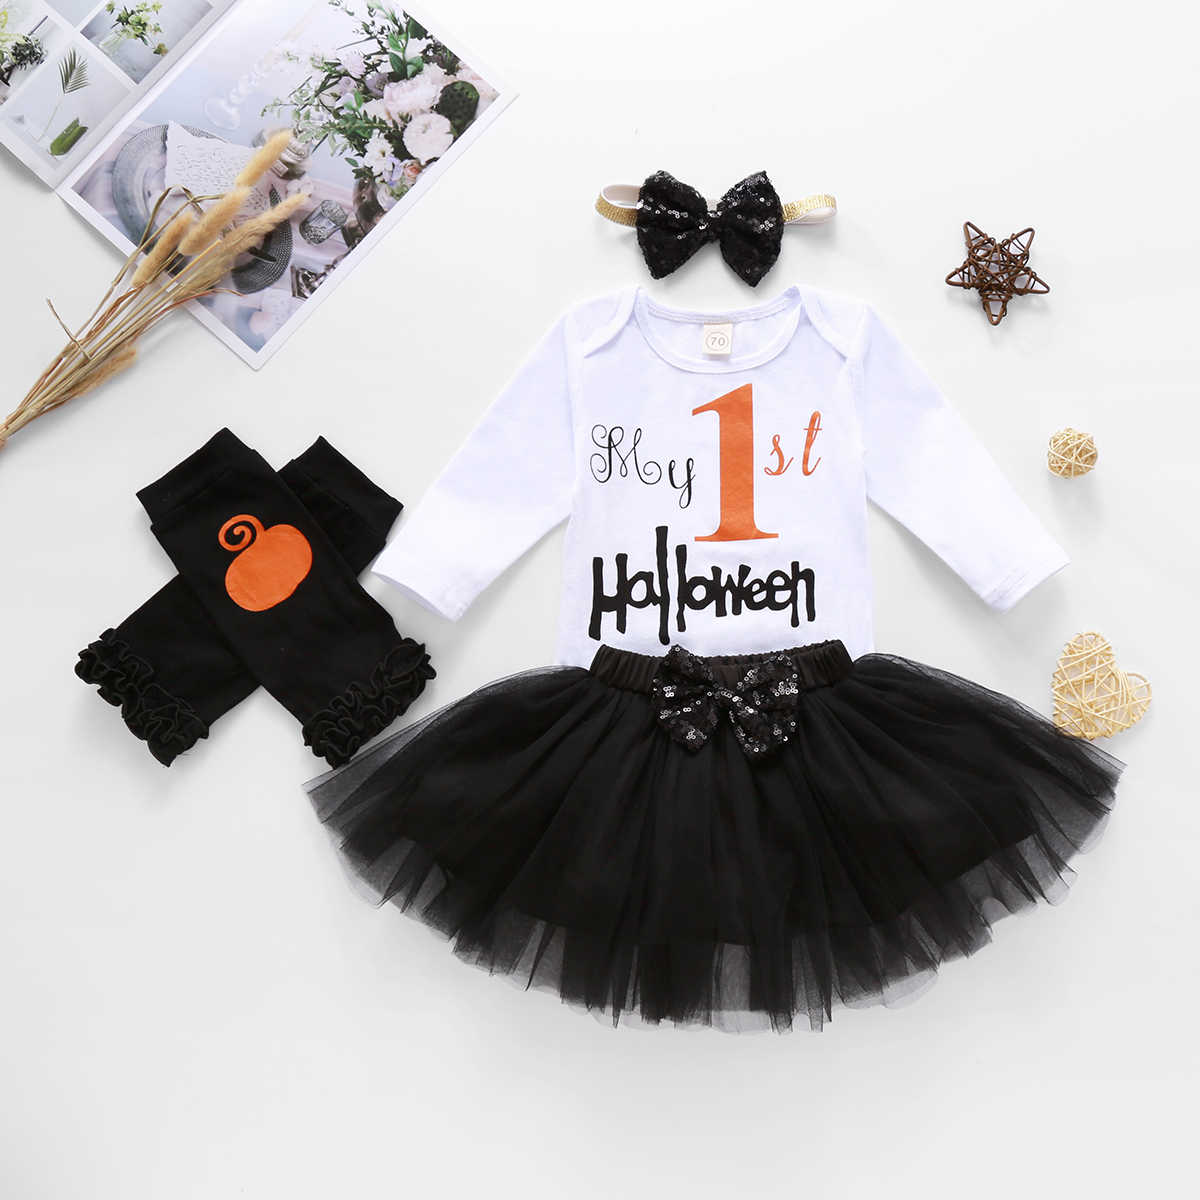 Halloween Baby Girl Outfits 1st Birthday Pumpkin Long Sleeve Romper Tulle Tutu Skirt Headband Leg Warmers 4pcs Clothes Set